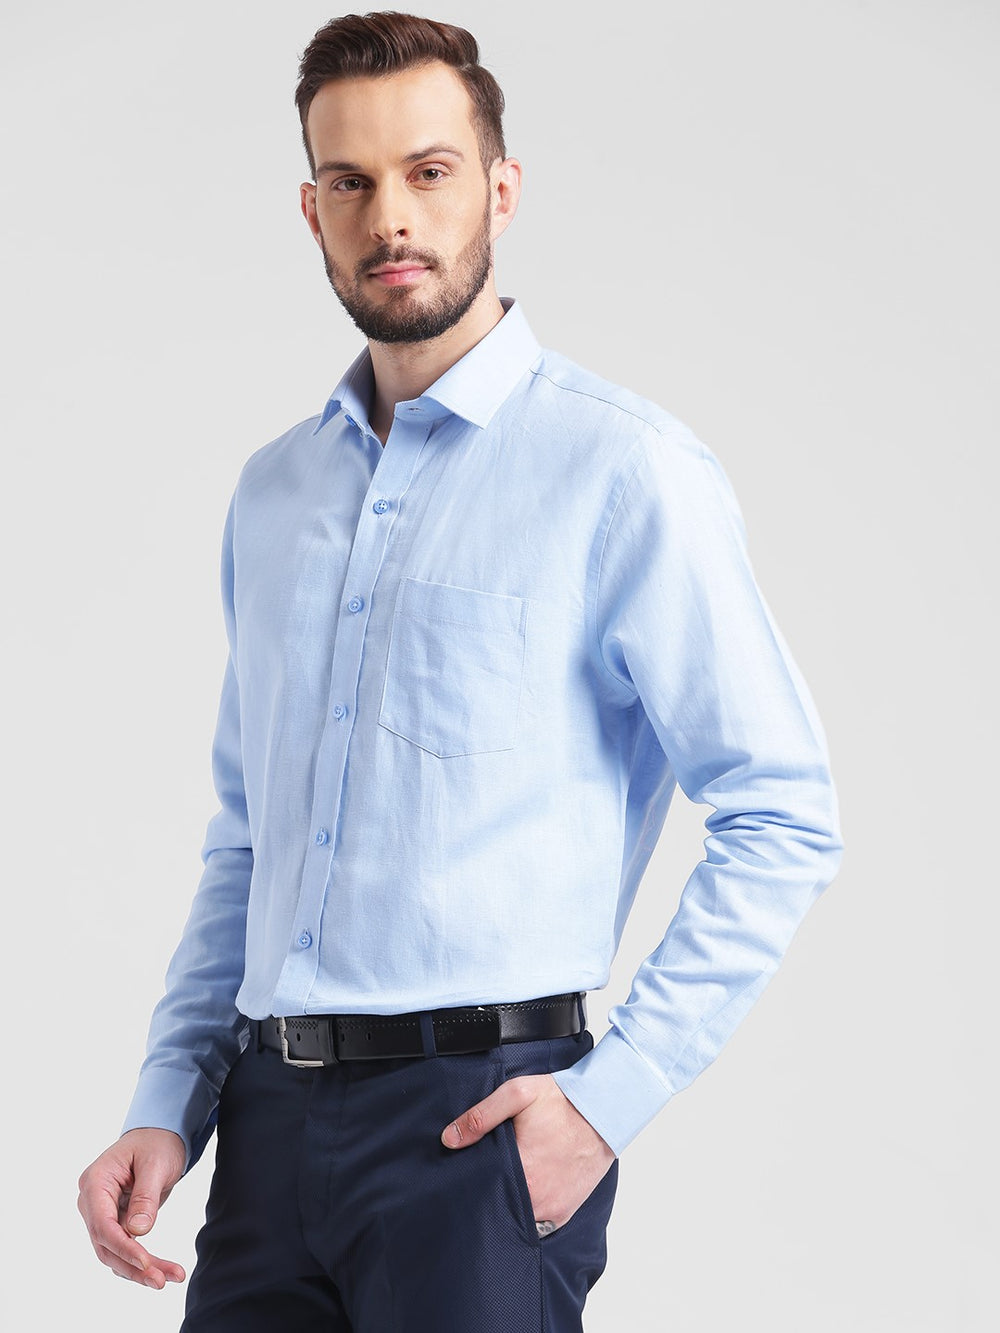 cobb blue slim fit formal shirt